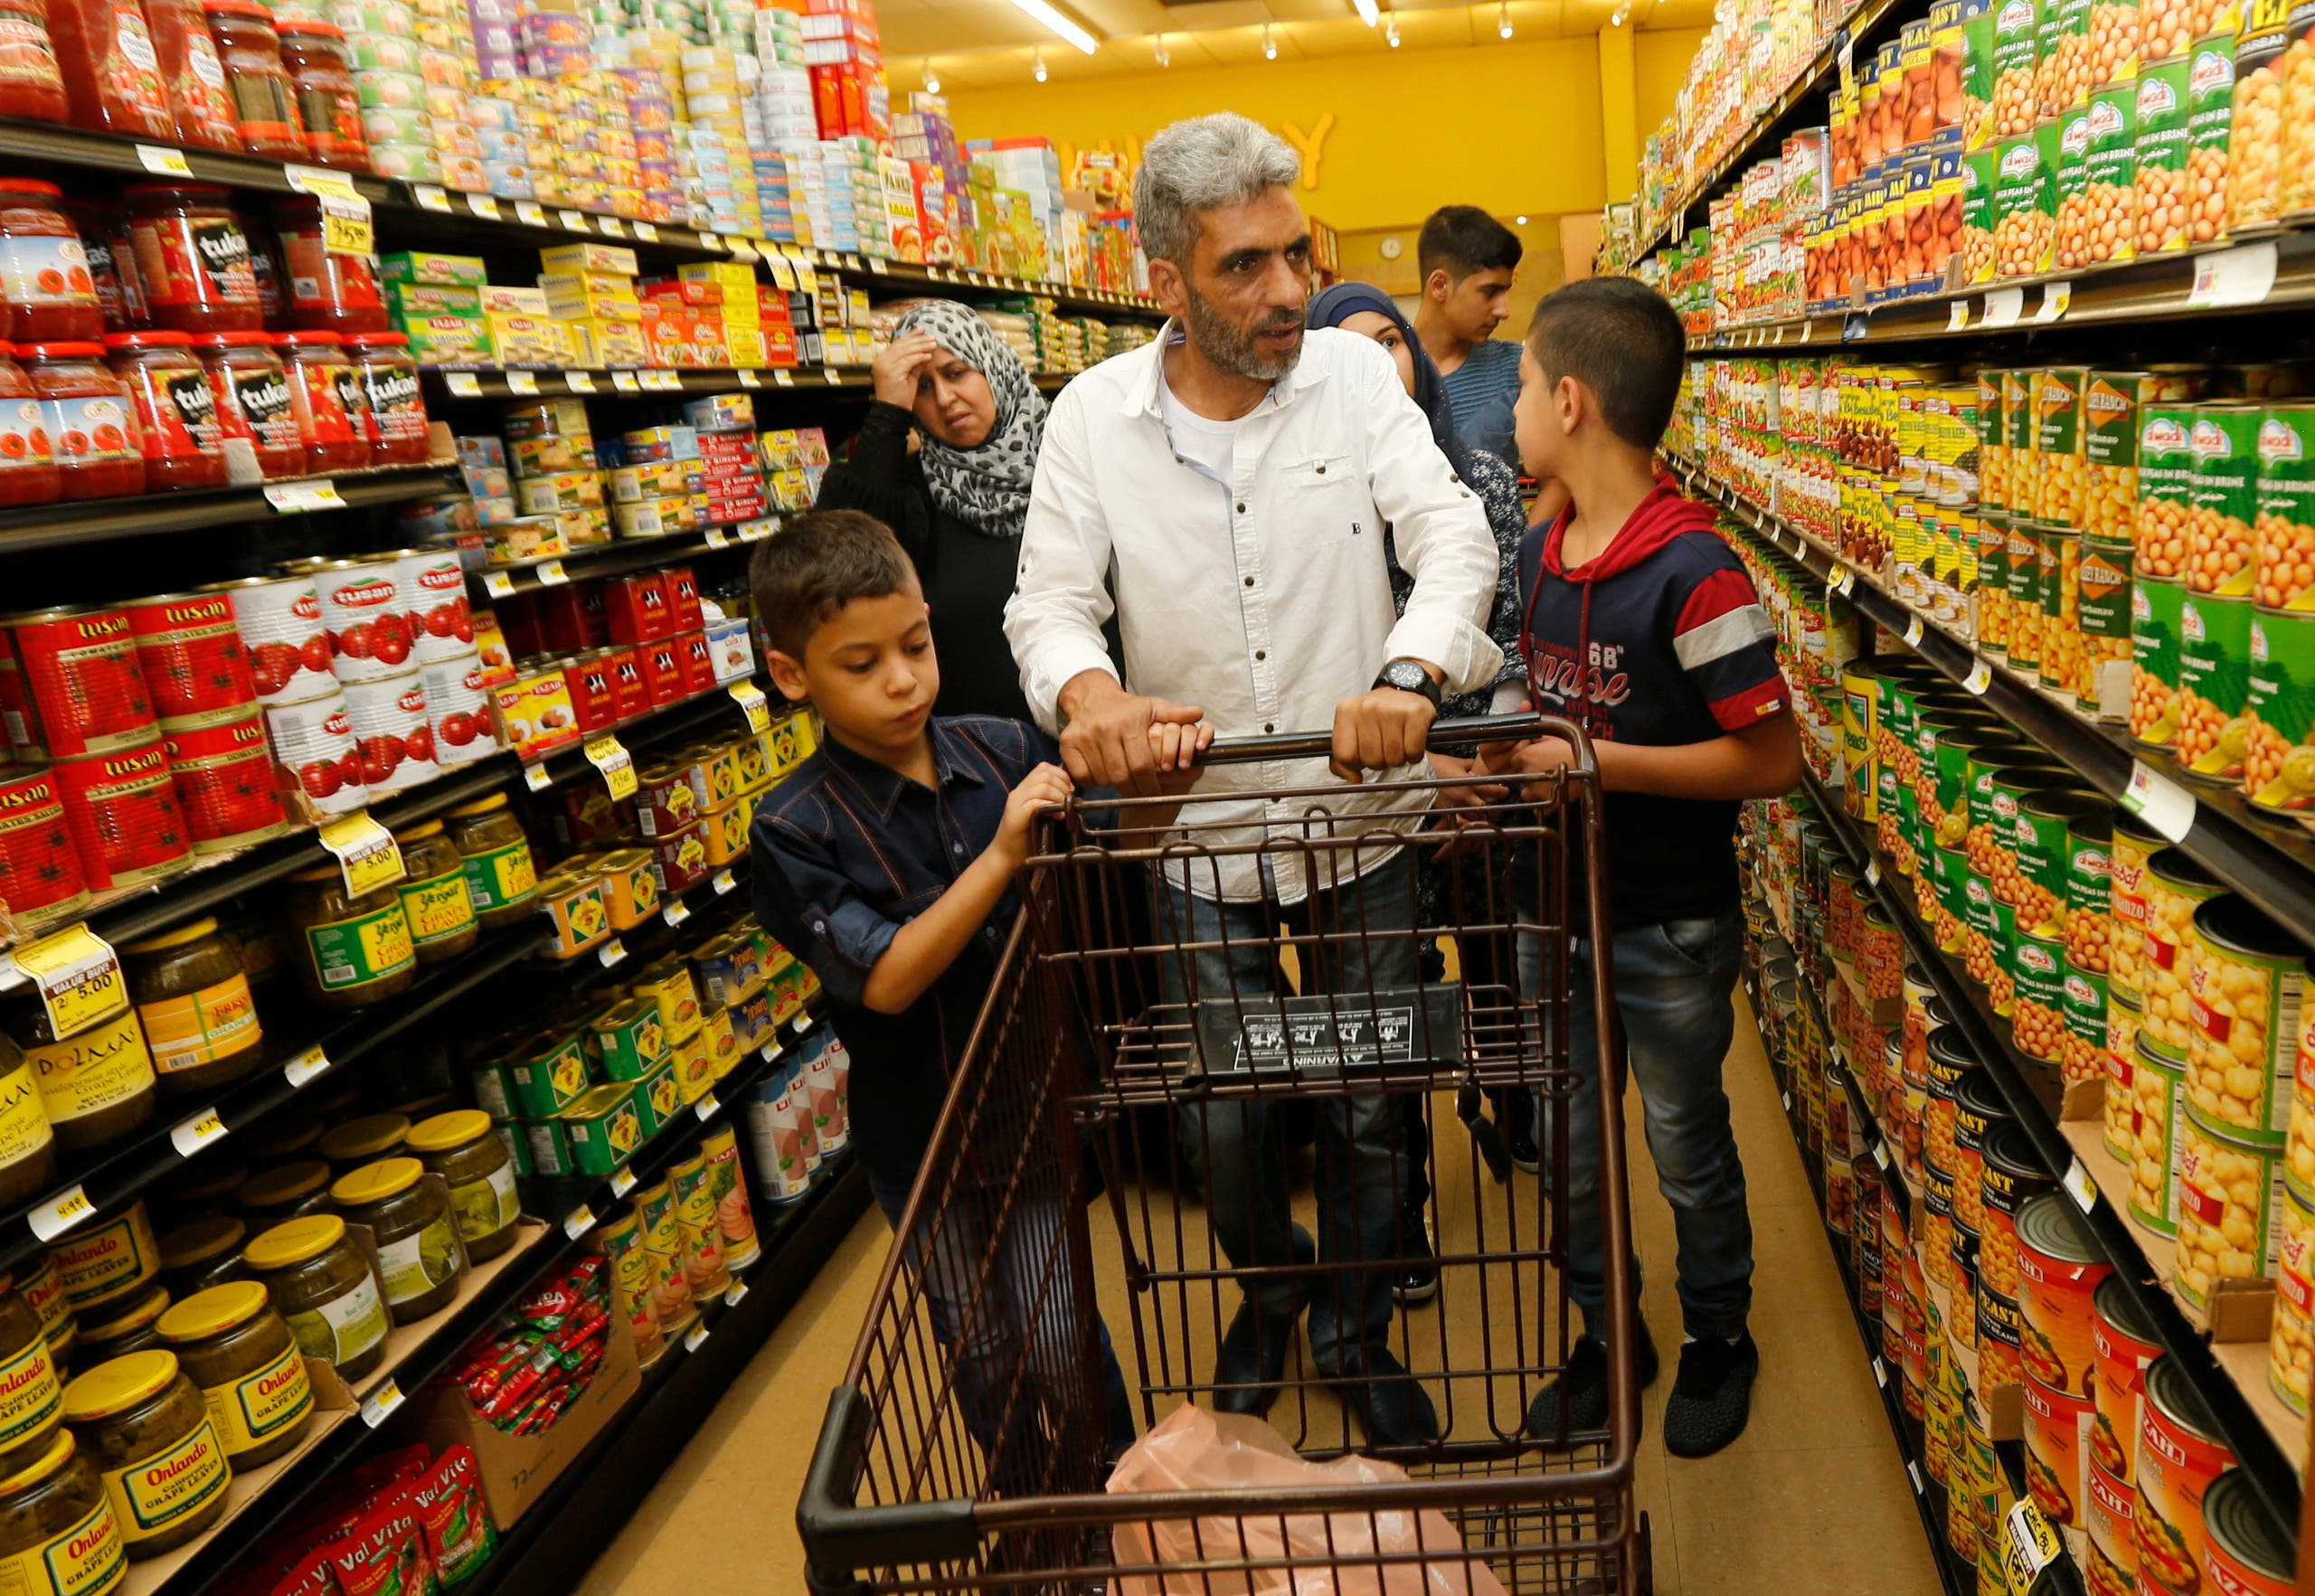 Nadim Fawzi Jouriyeh, a Syrian refugee who arrived in the United States this week with his family, pushes a shopping cart with sons, Farouq Nadim Jouriyeh, left, and Hamzeh Nadim Jouriyeh, Wednesday, Aug. 31, 2016, in El Cajon, Calif. Days after participating in a ceremony in Jordan to mark the United States hitting its target of taking in 10,000 Syrian refugees, the former construction worker and his family buy roasted chicken, milk and fruit for their new home outside San Diego. (AP Photo/Lenny Ignelzi)